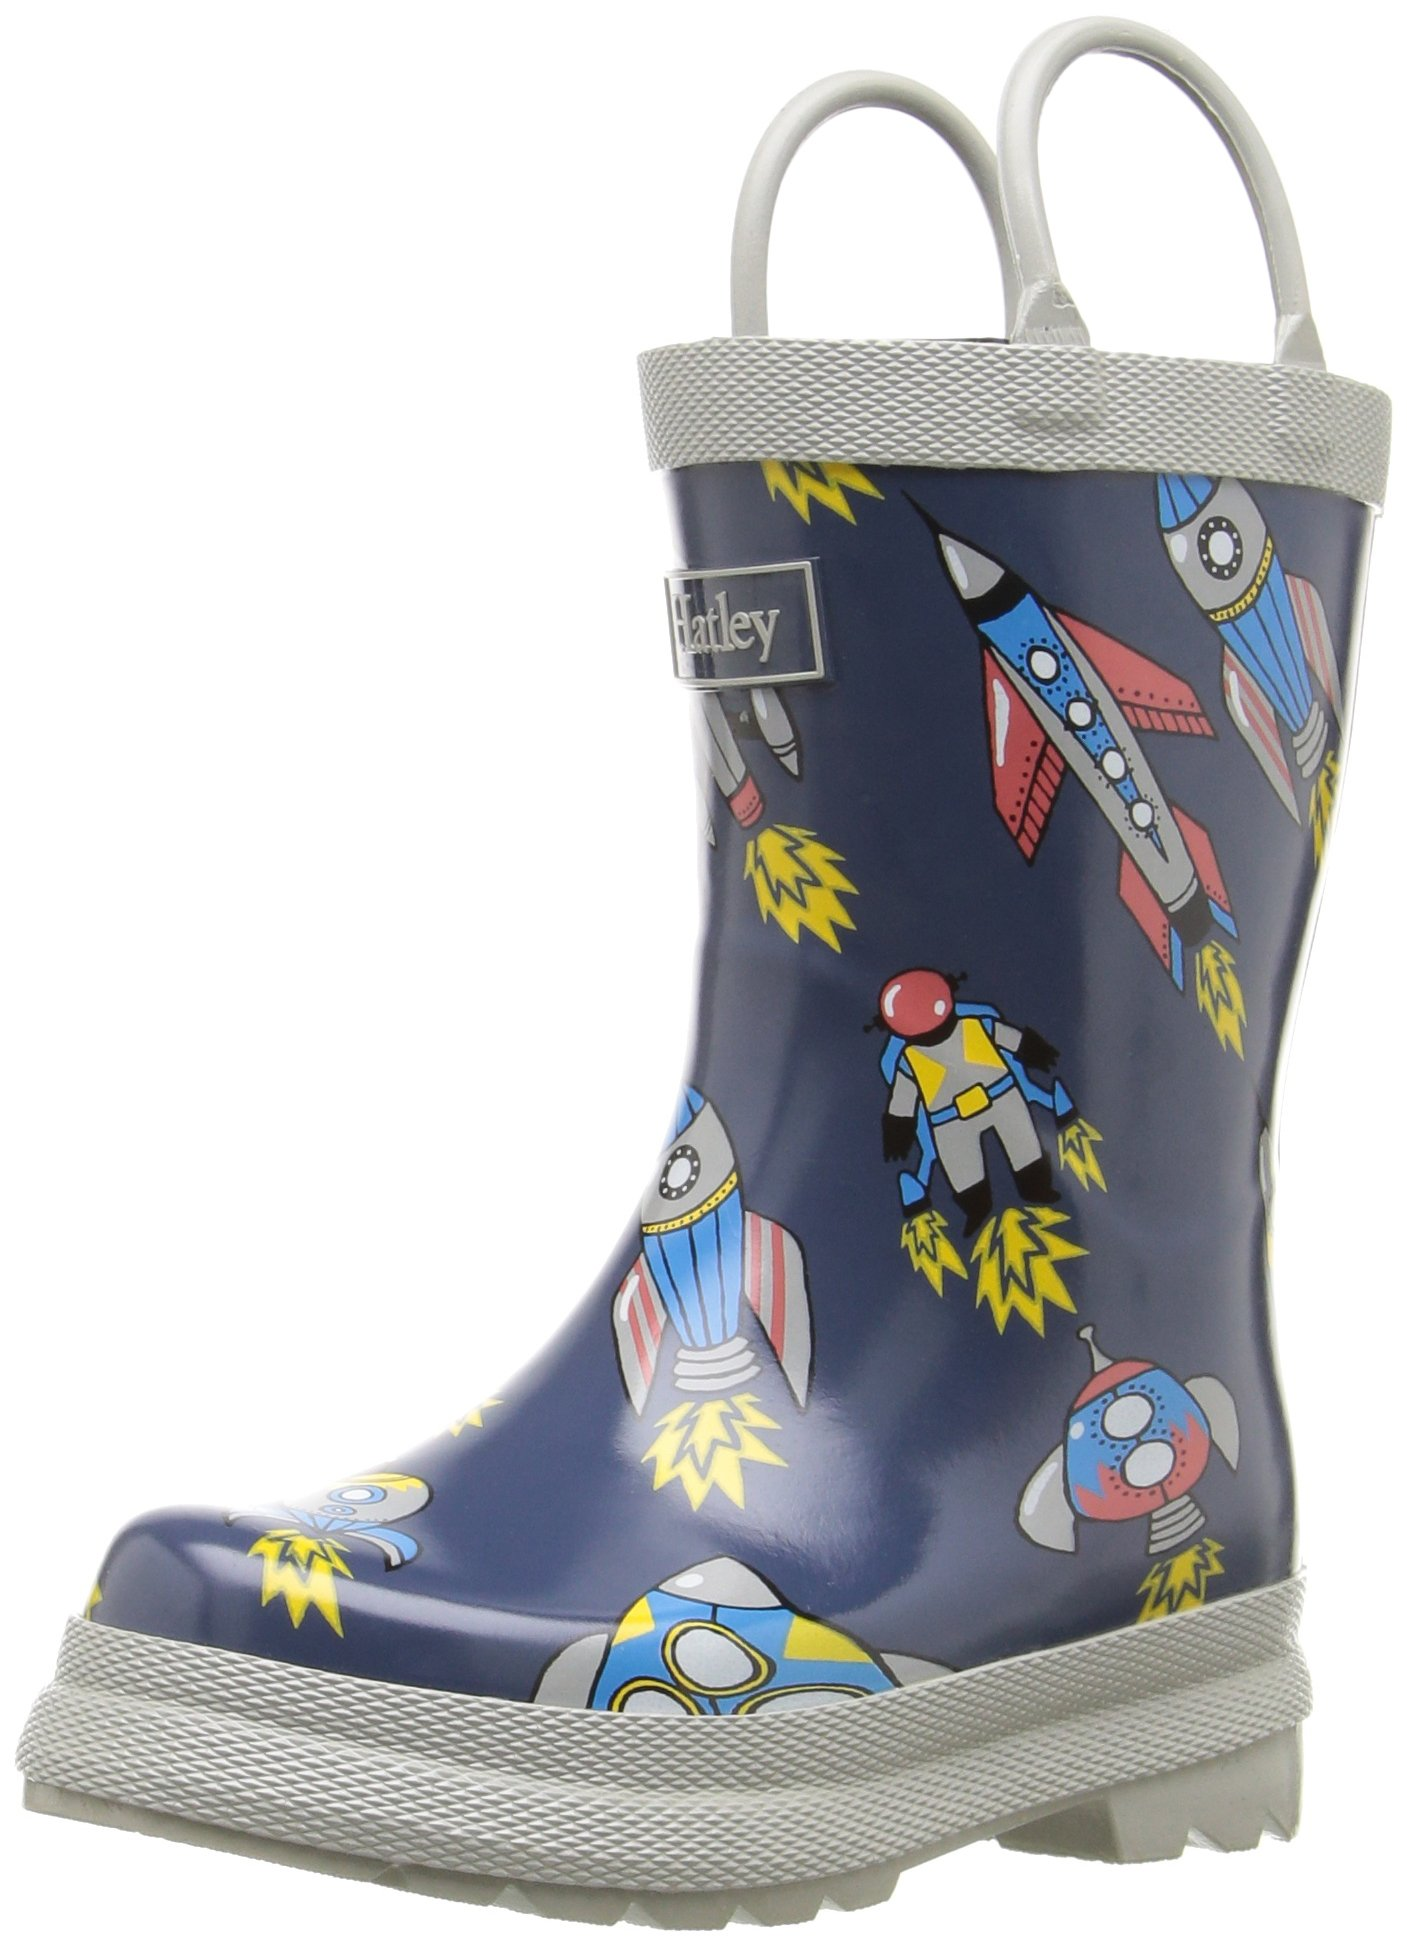 Hatley Boys' Printed Rain Boots Accessory, Retro Rocket 10 US Child